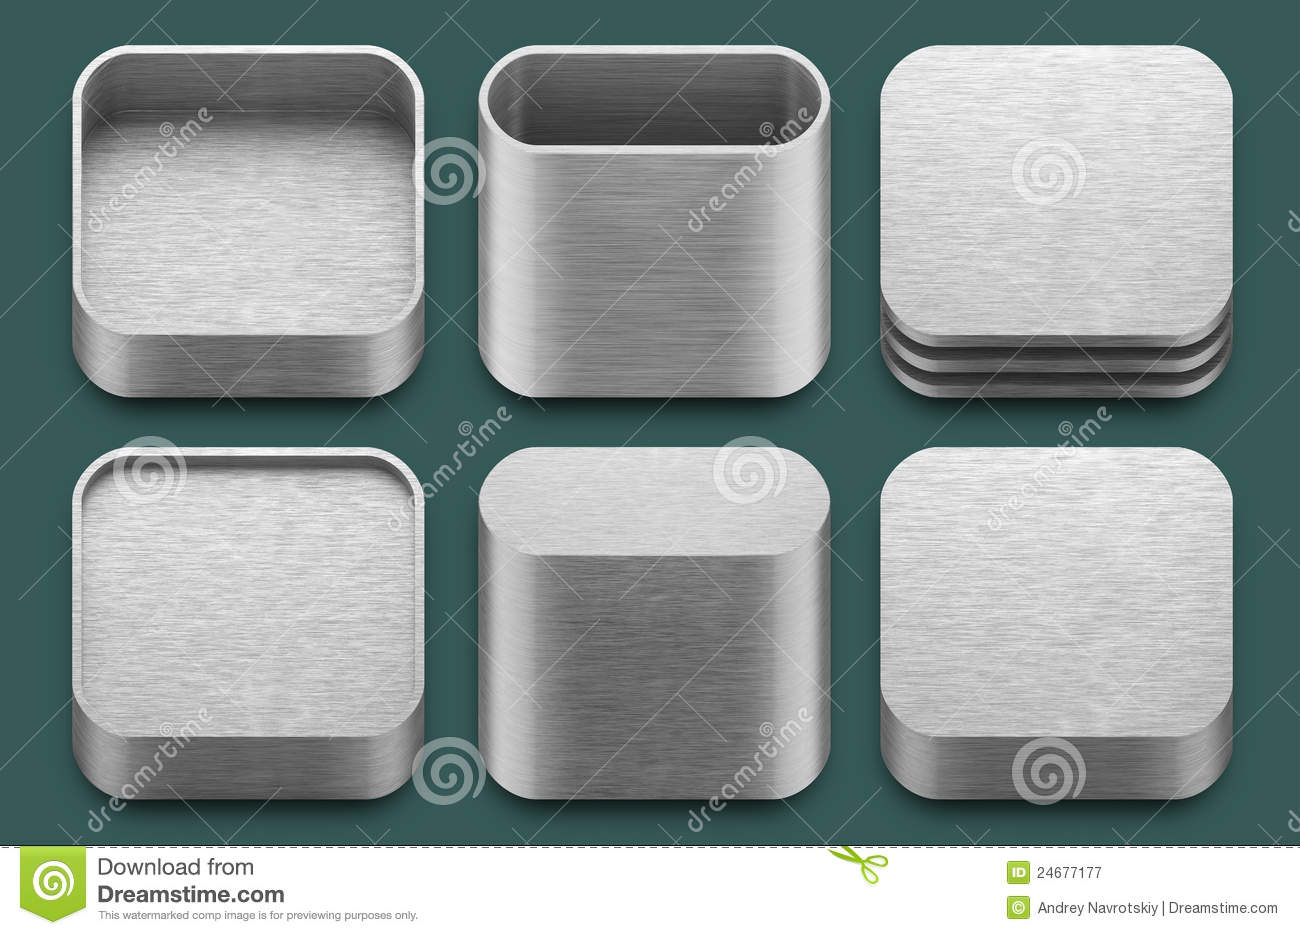 8 IPad Blank App Icon Images